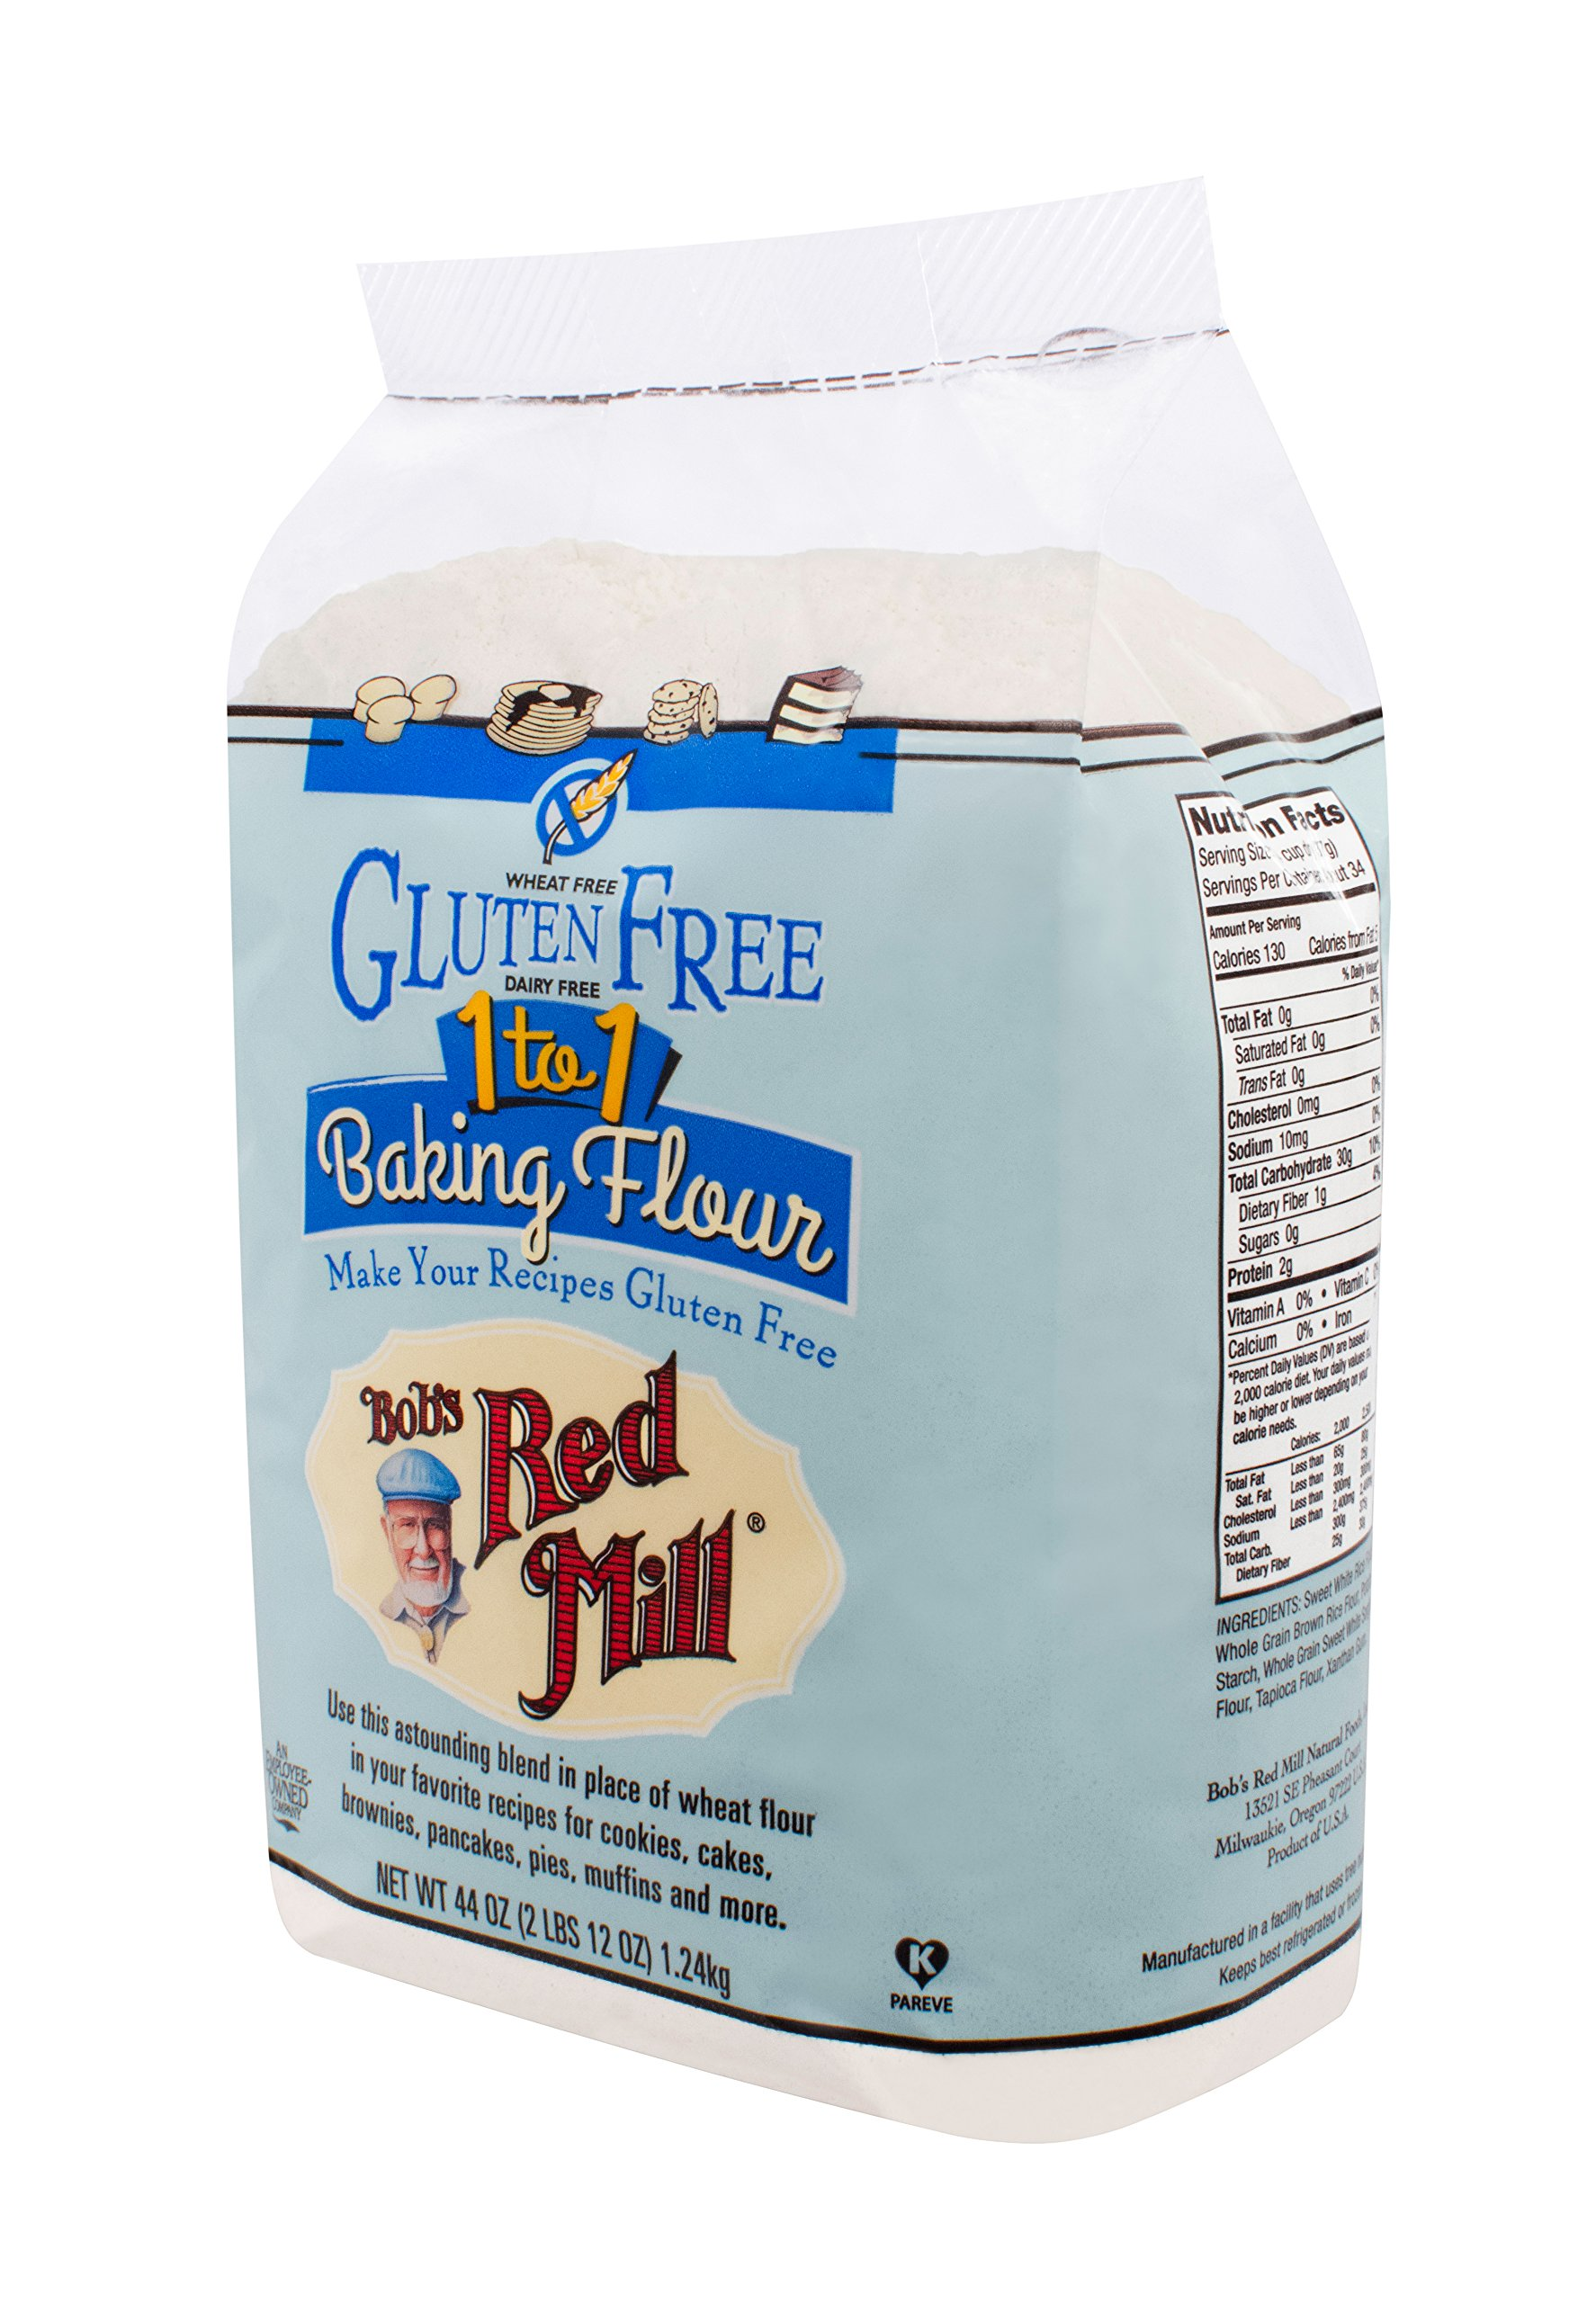 Bob's Red Mill Gluten Free 1 to 1 Baking Flour, 44 Ounce (Pack of 4) by Bob's Red Mill (Image #9)